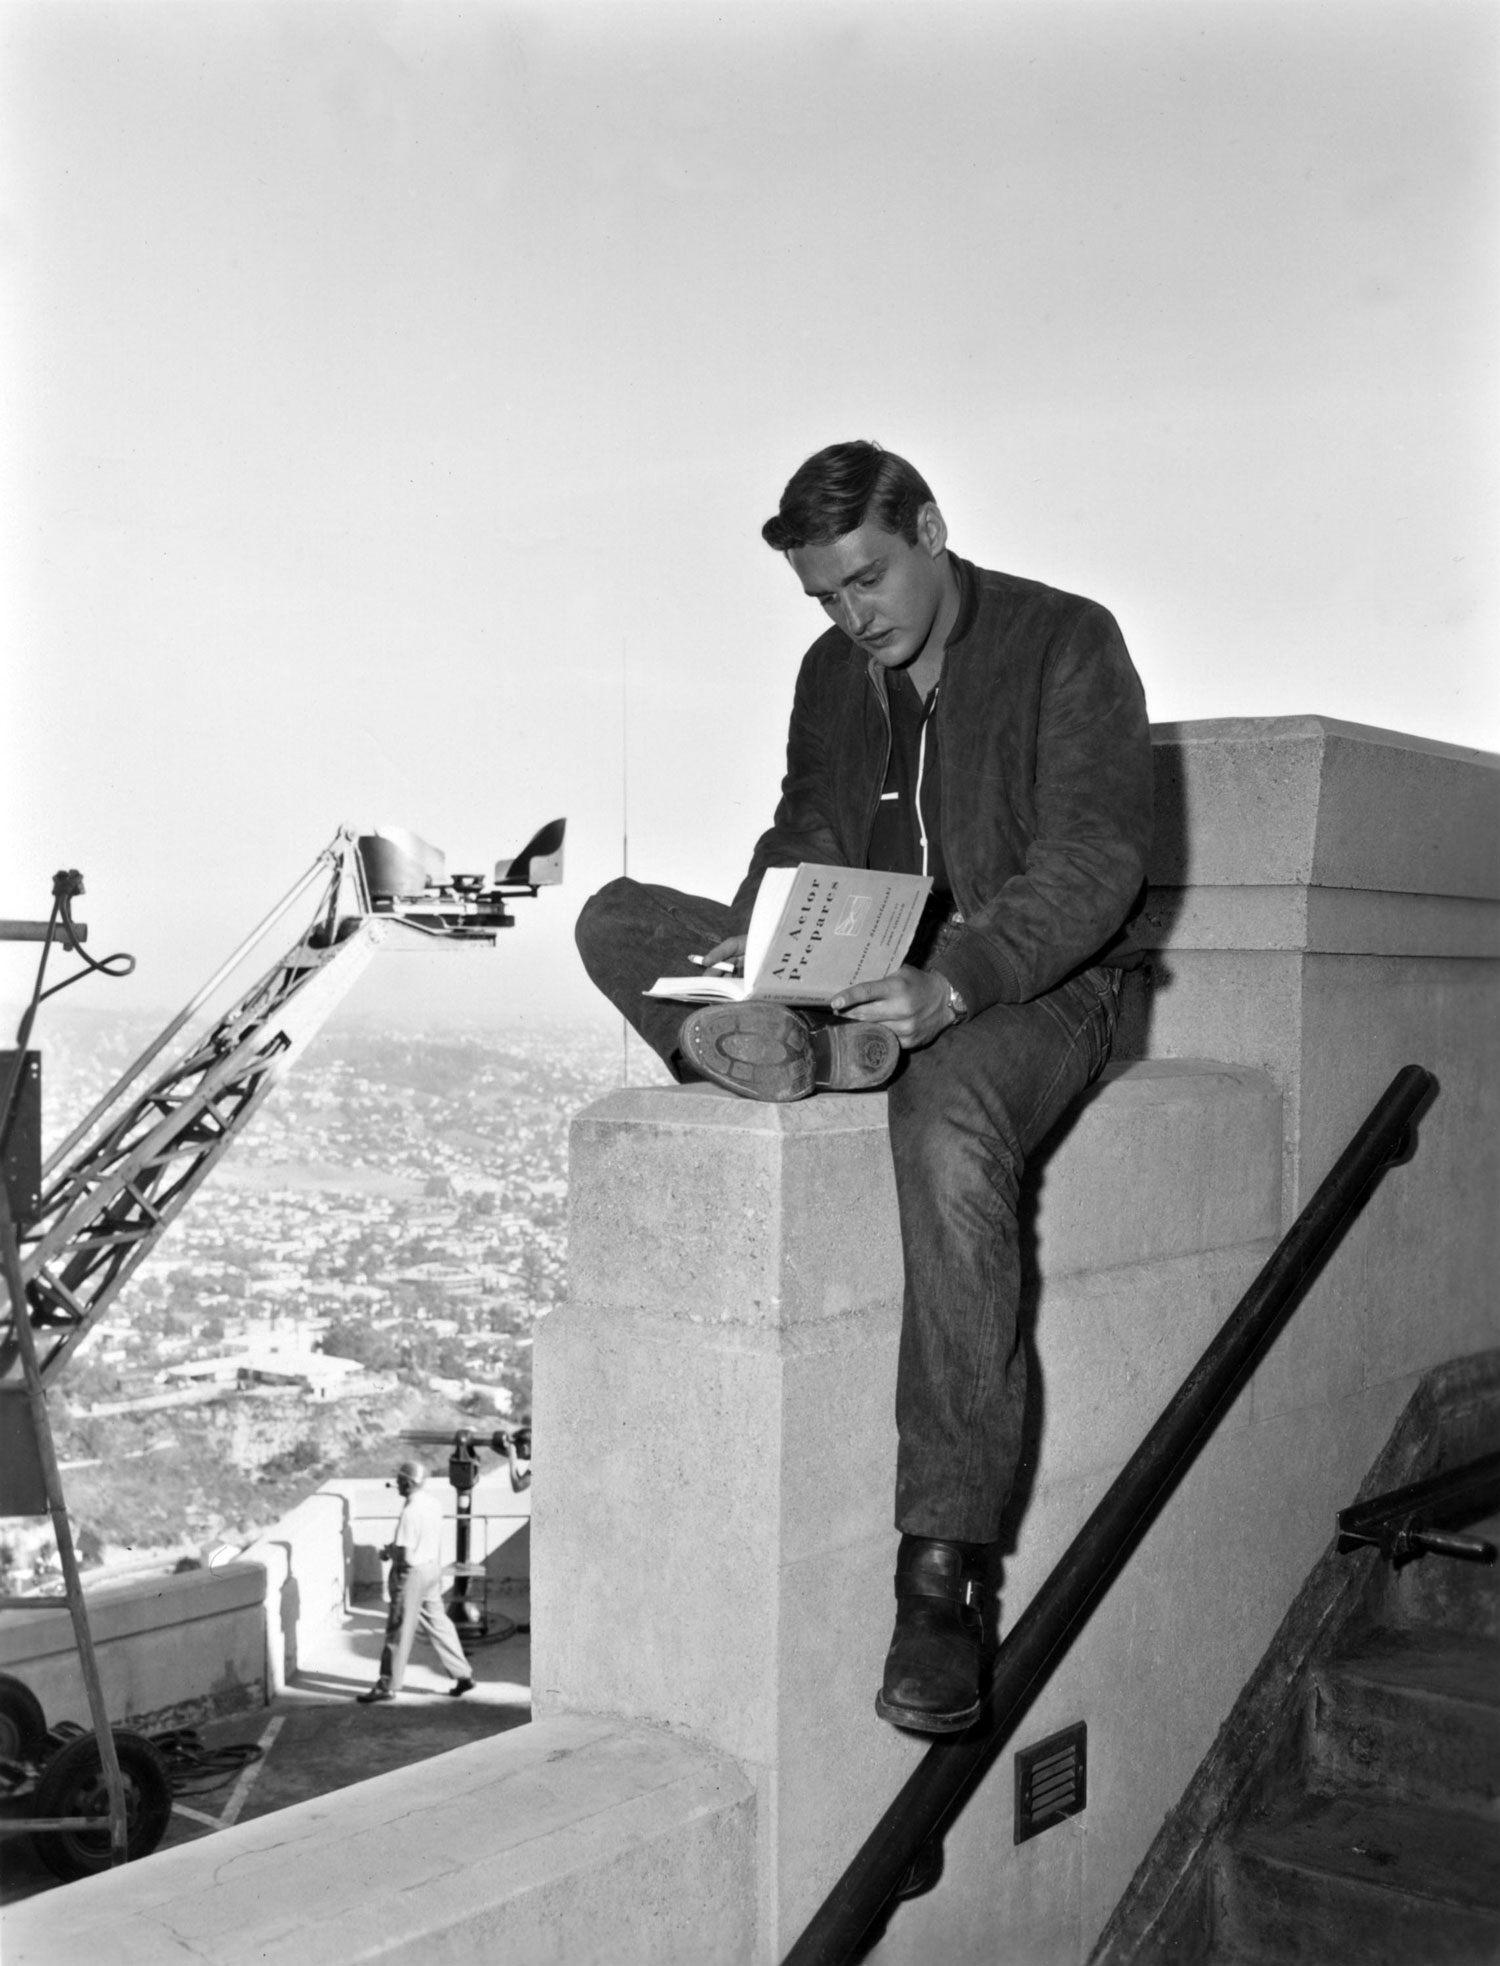 The actor enjoys some reading time while filming the rumble scene atop the Griffith Observatory in Rebel without a Cause.